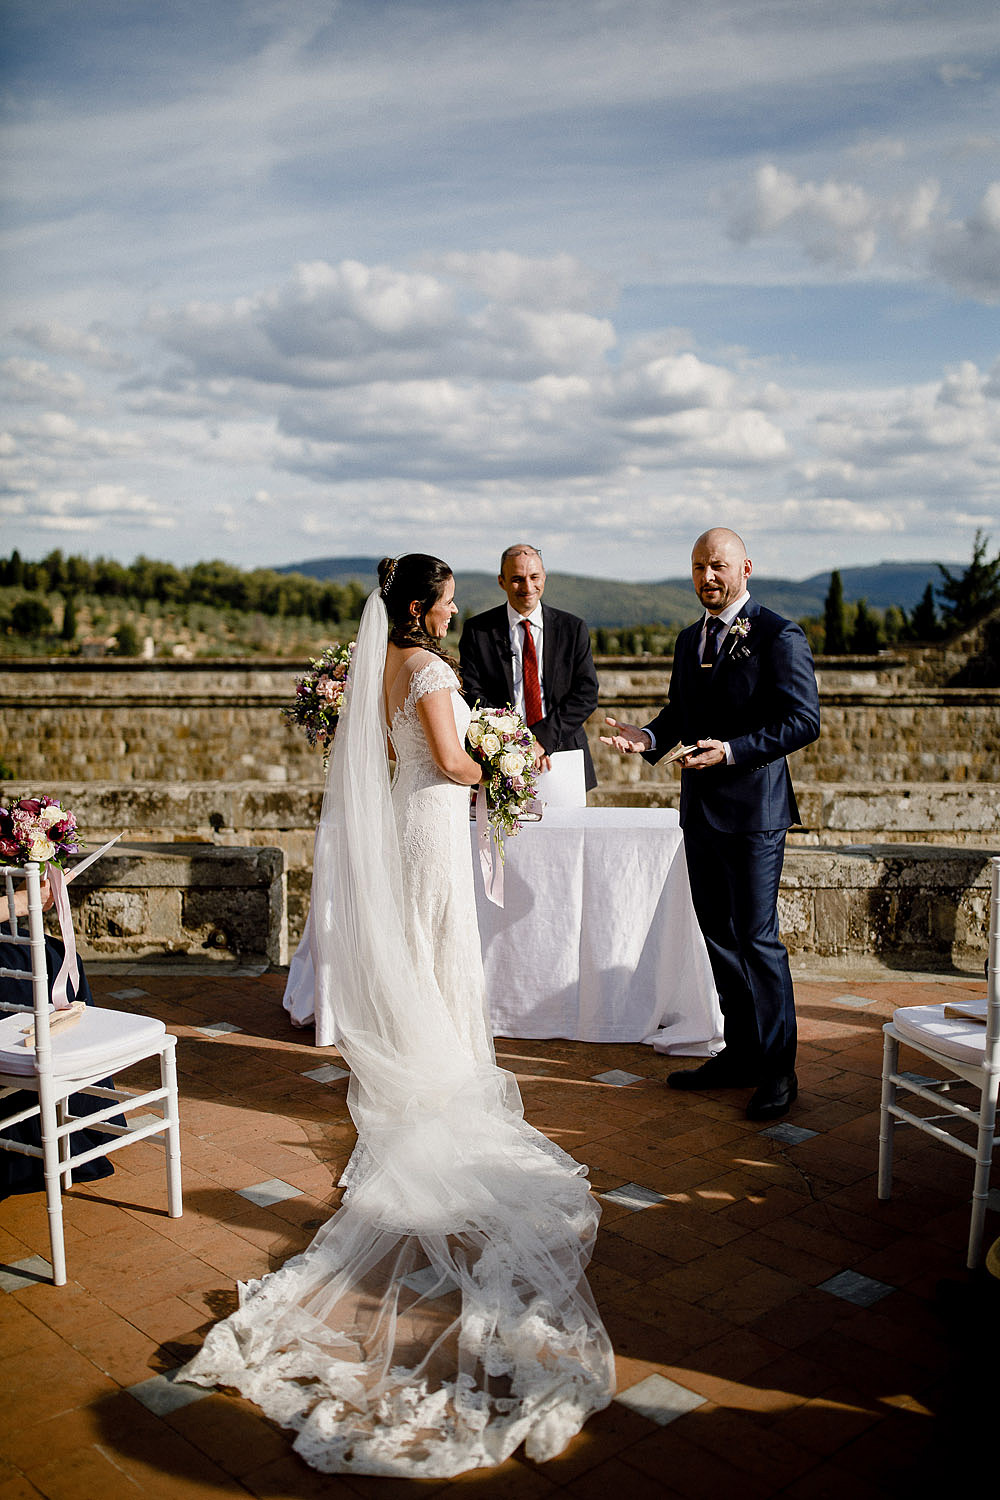 Elegante Matrimonio a Castello Vincigliata | Firenze Italia :: Luxury wedding photography - 27